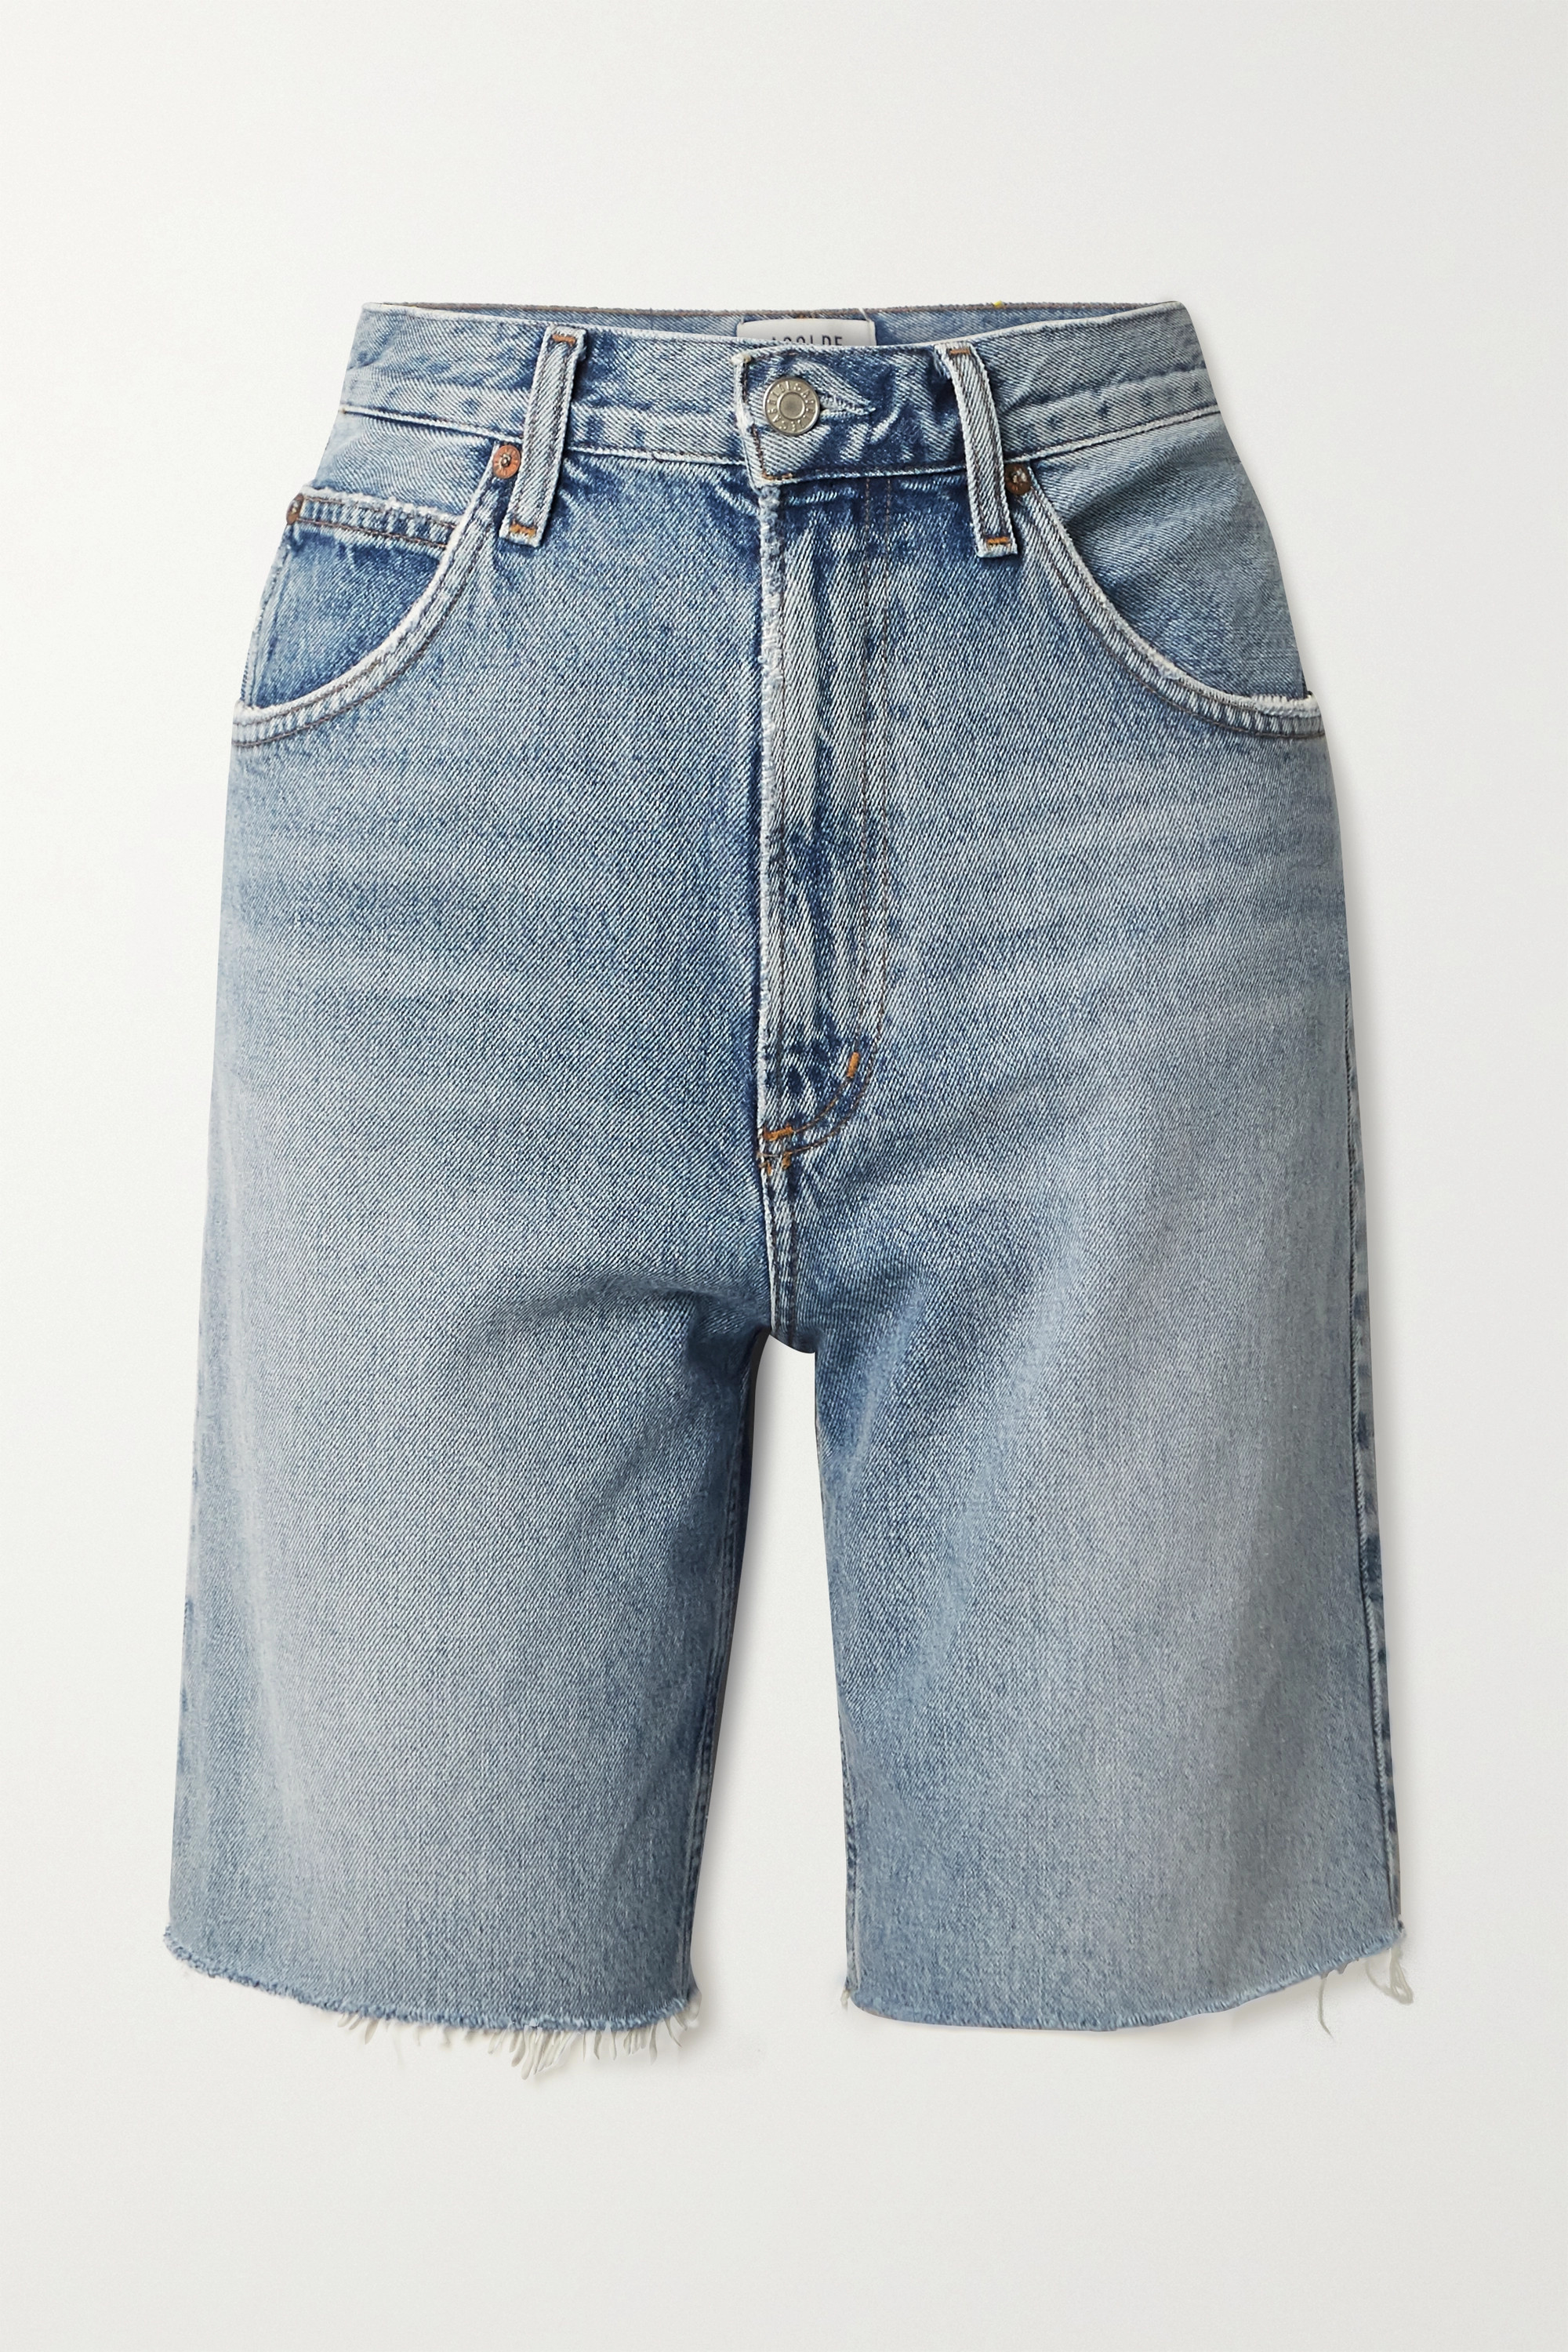 AGOLDE + NET SUSTAIN Pinch distressed organic denim shorts